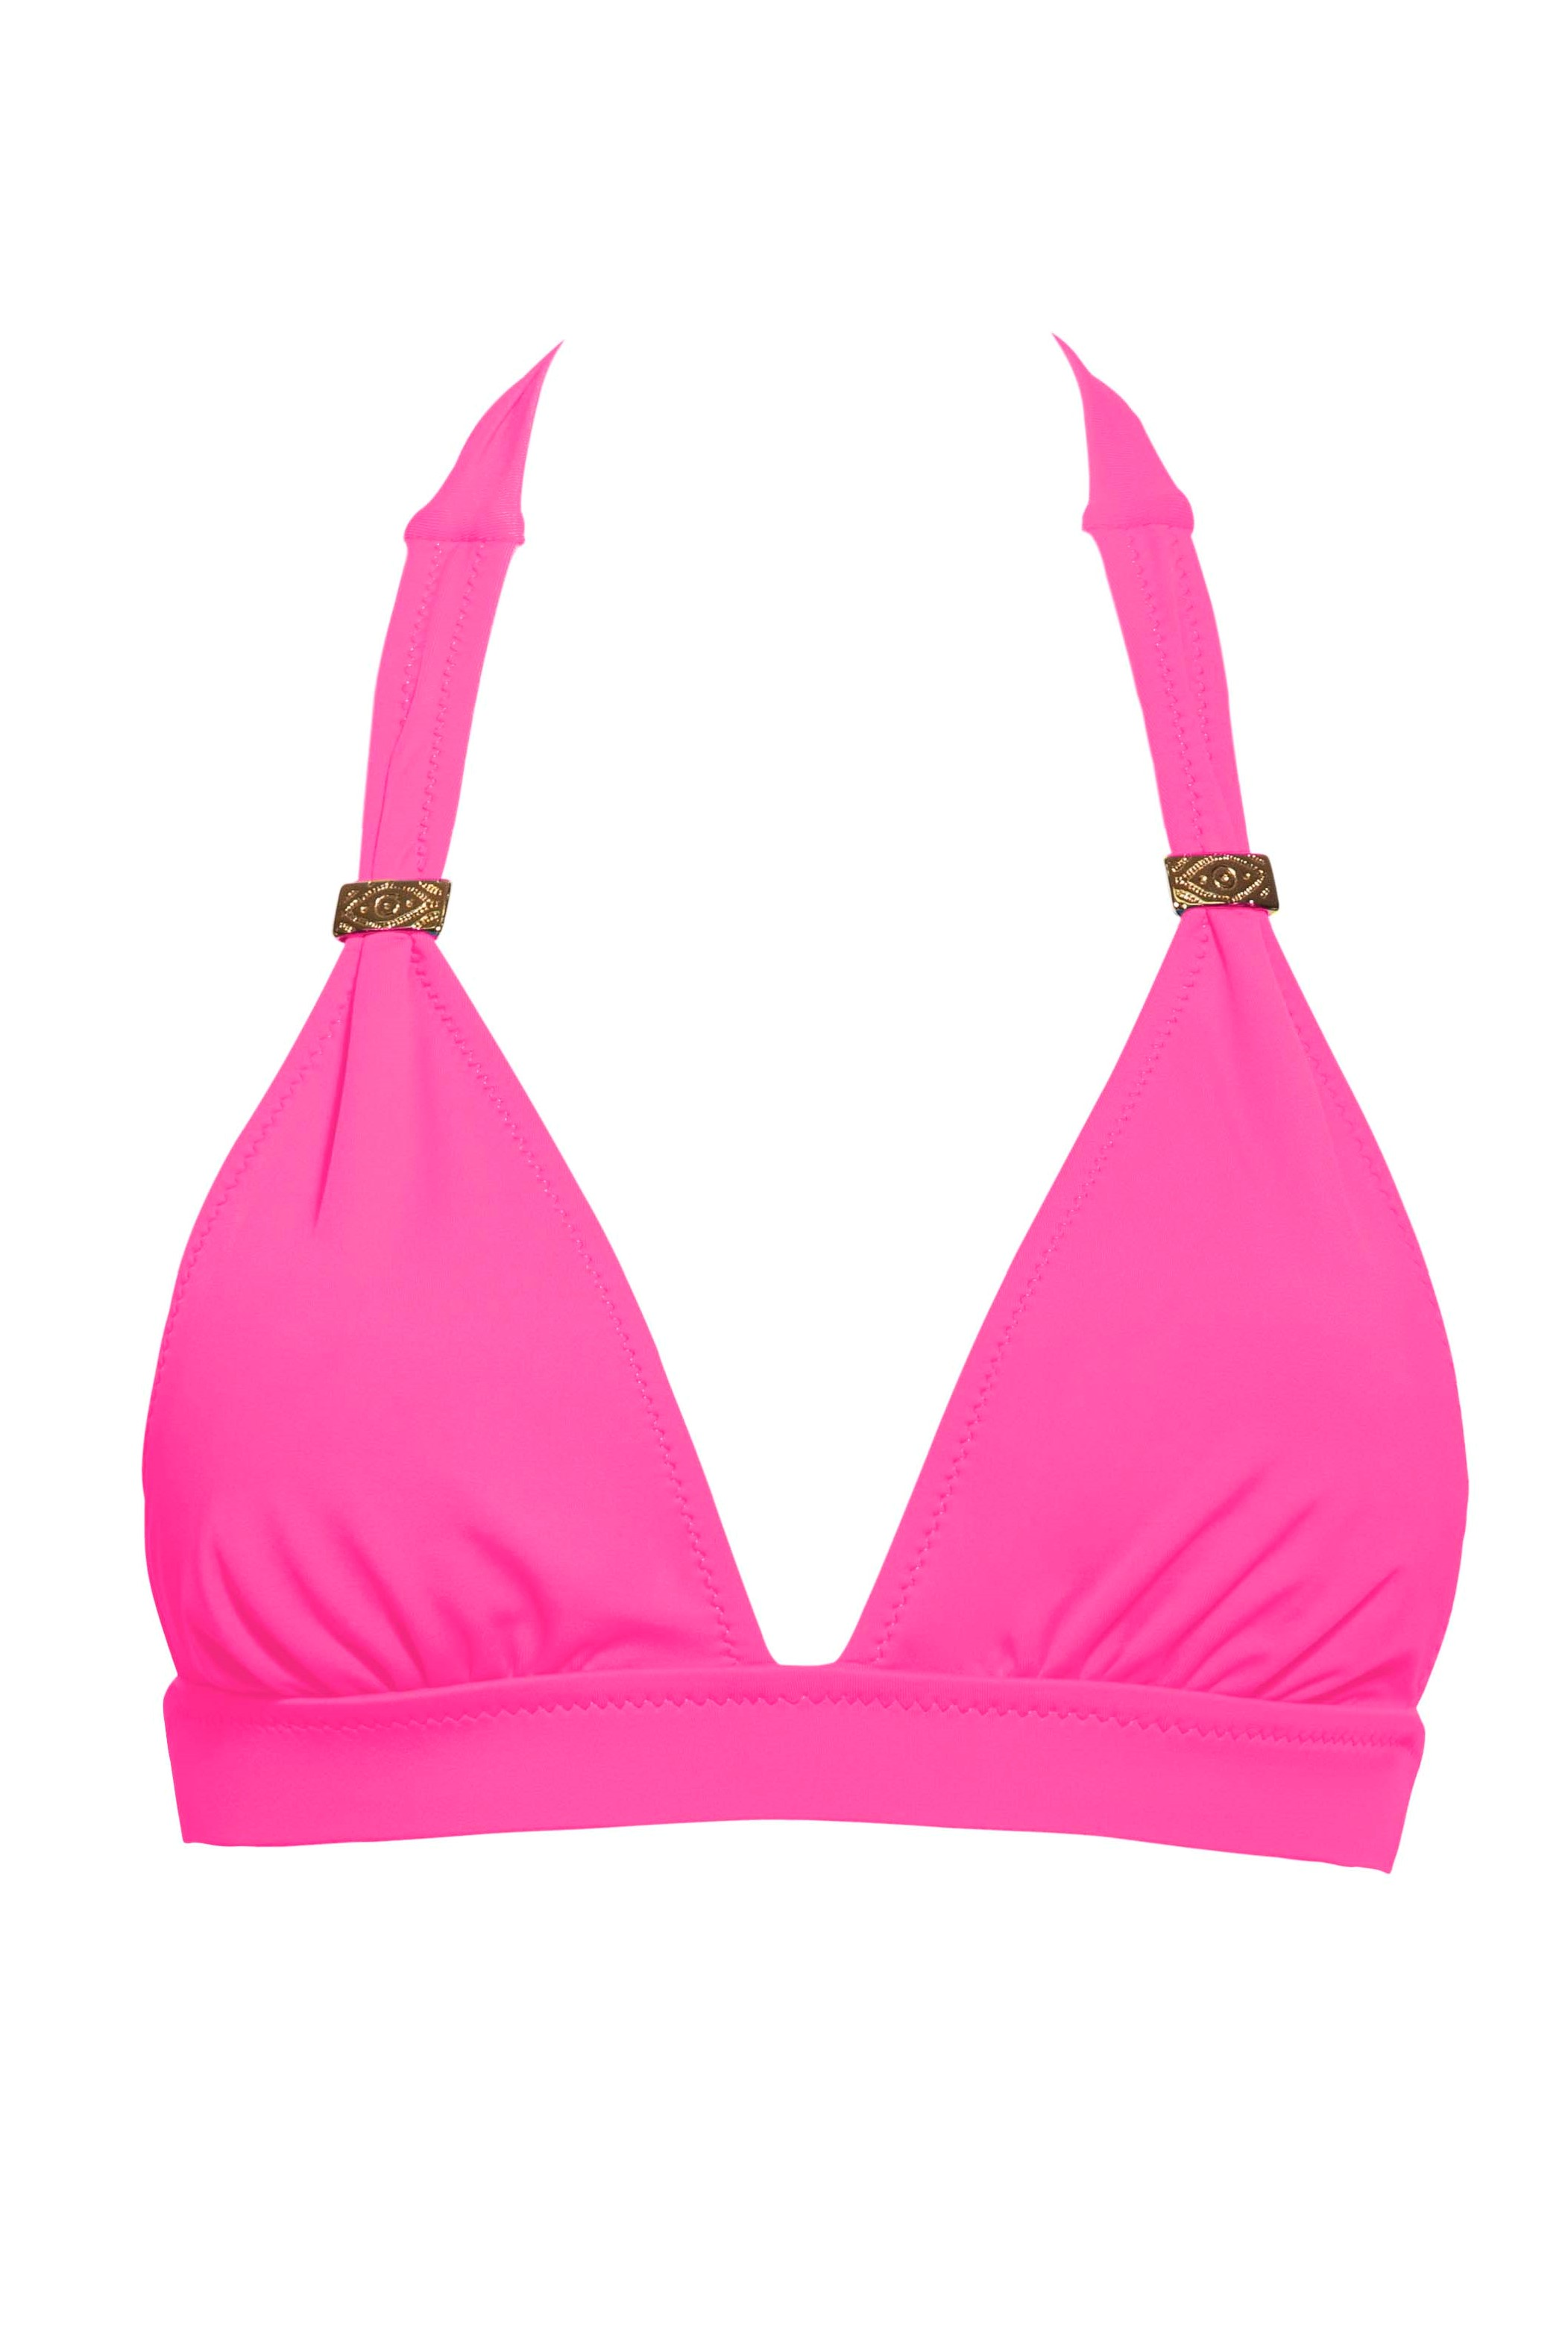 Phax Color Mix Halter Bikini Top Neon Pink-extralarge-Neon Roos